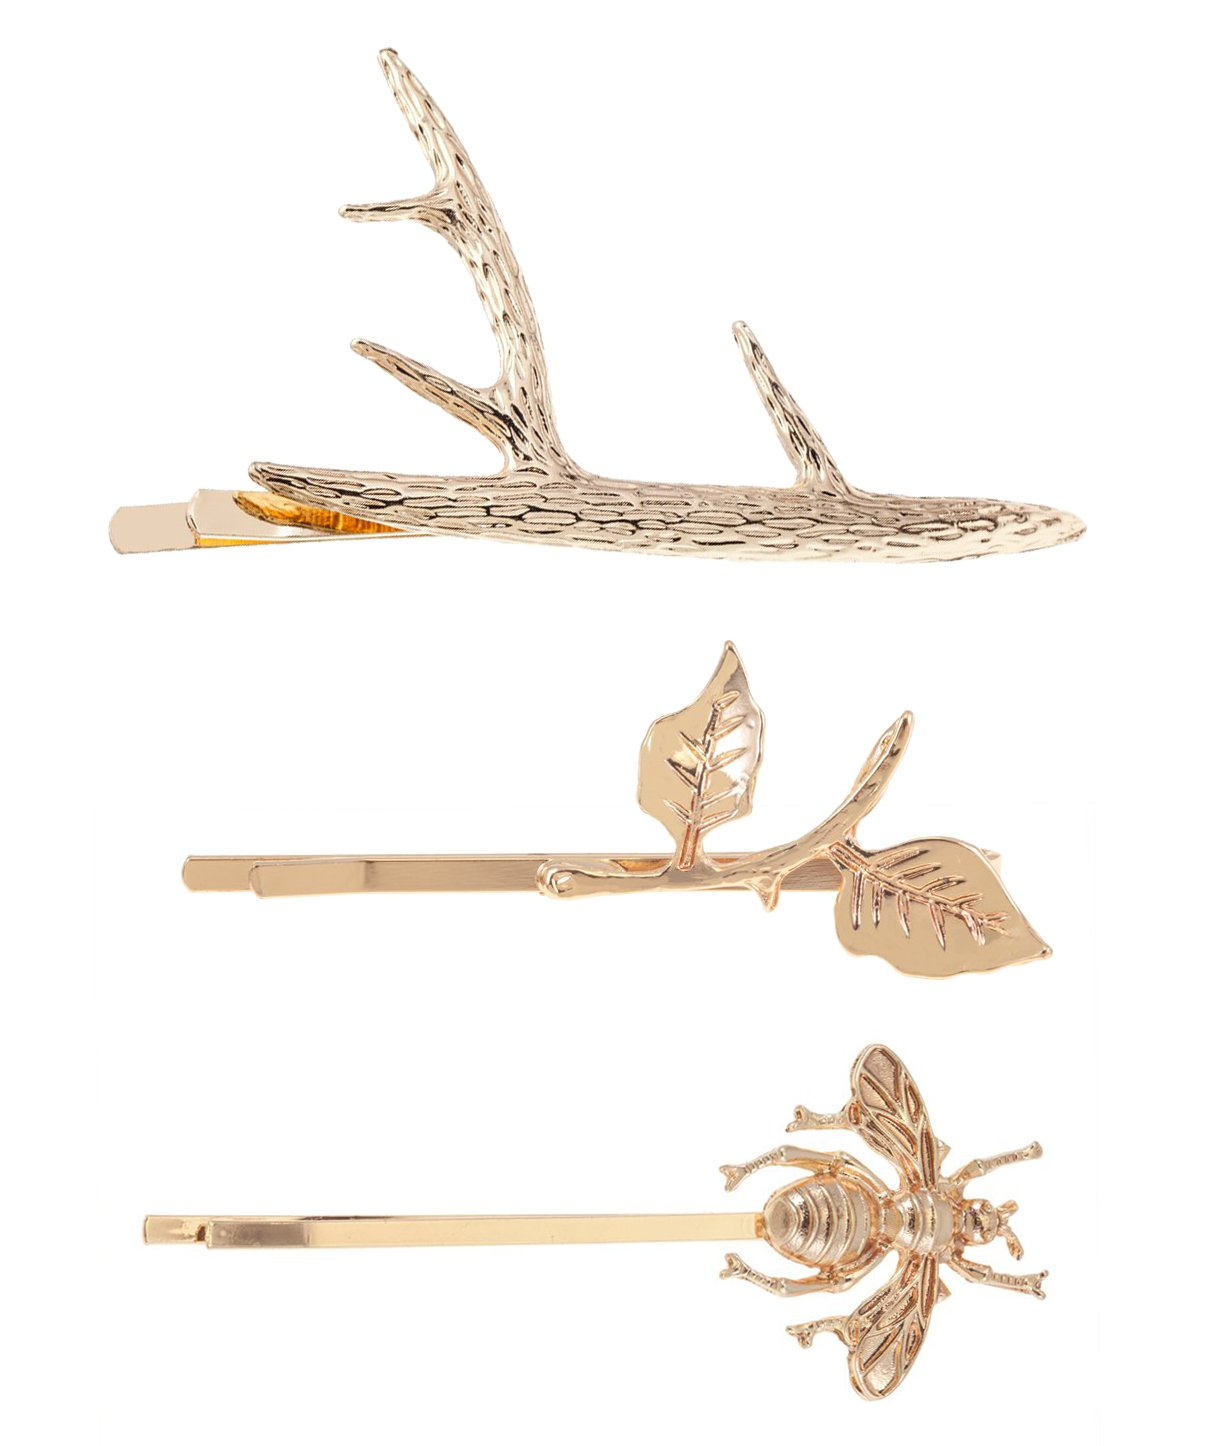 Fabulous Set of 3 Golden Hair Pins / Hairstyles Clasps With Detailed Leaves Decorations, Deer Horn Shaped And Detailed Bee Shaped By VAGA 646437932837